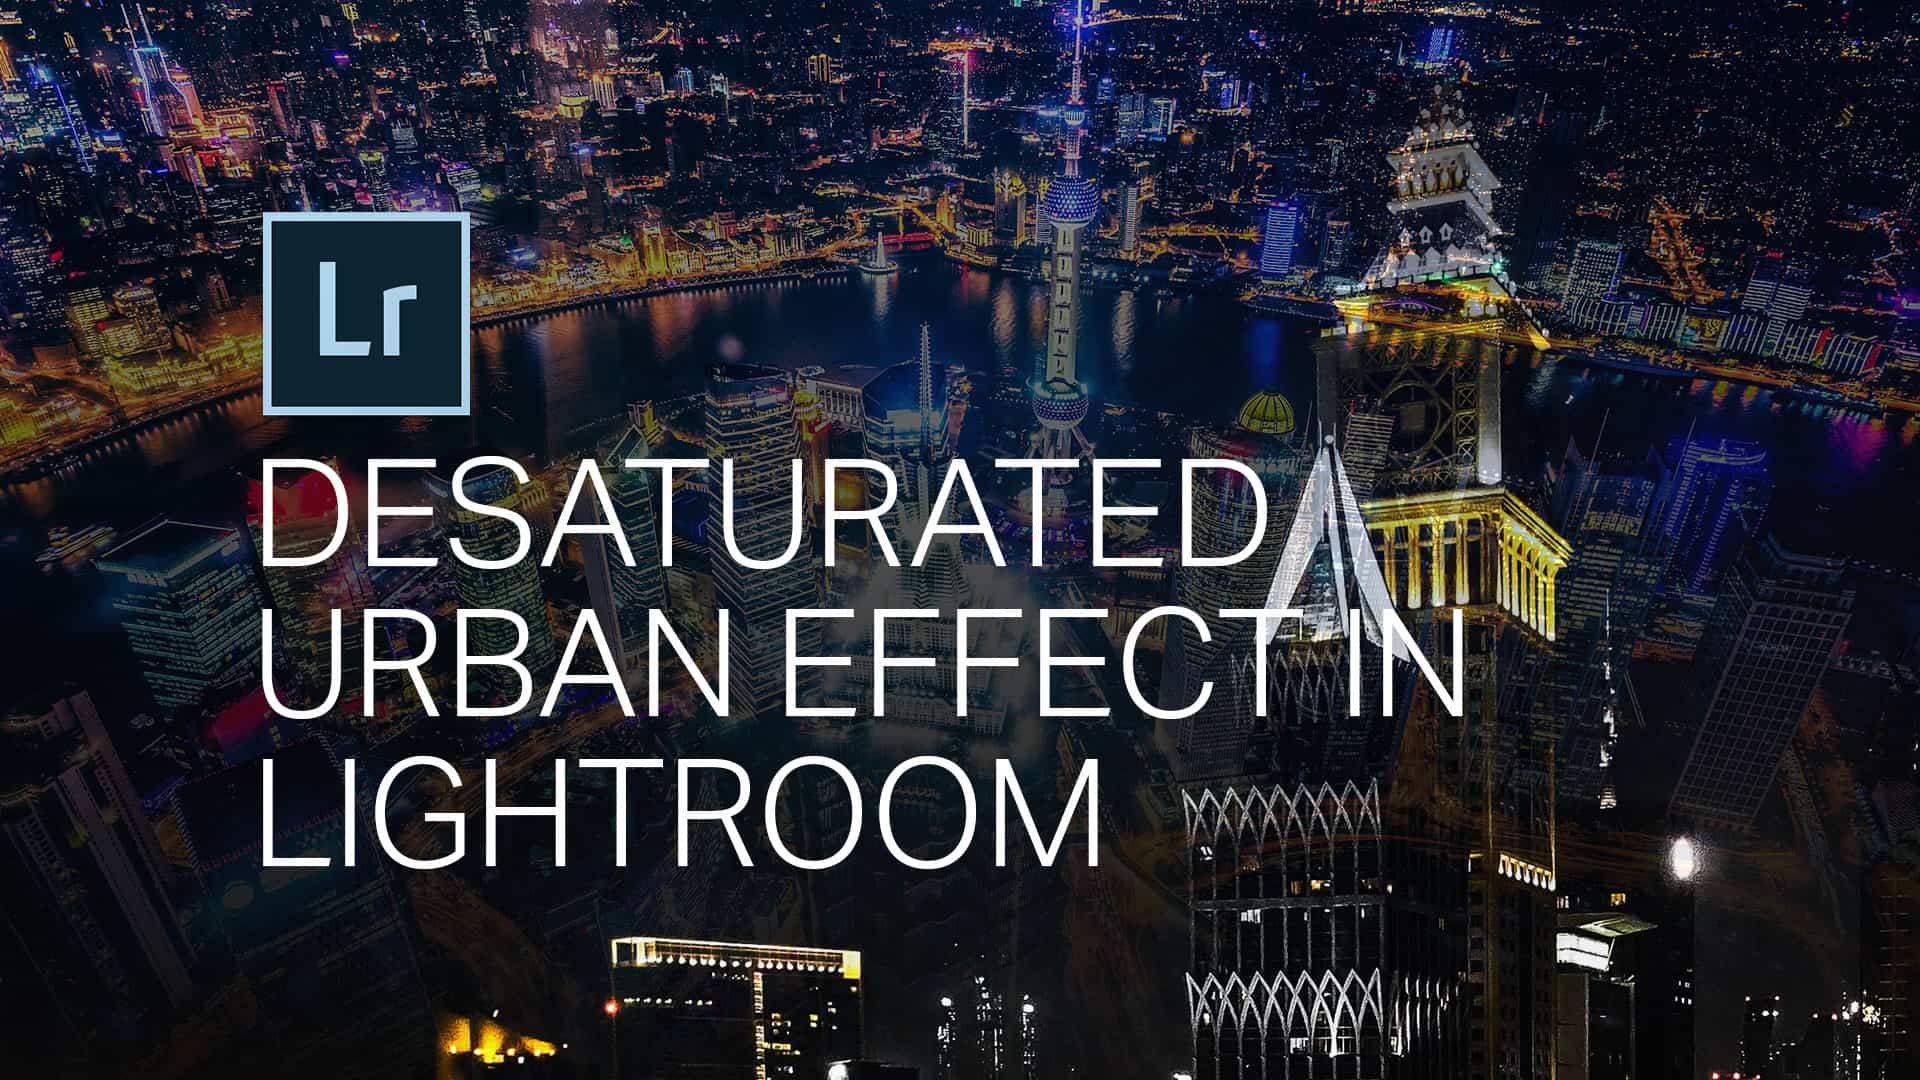 How to Create the Urban Desaturated Look in Lightroom